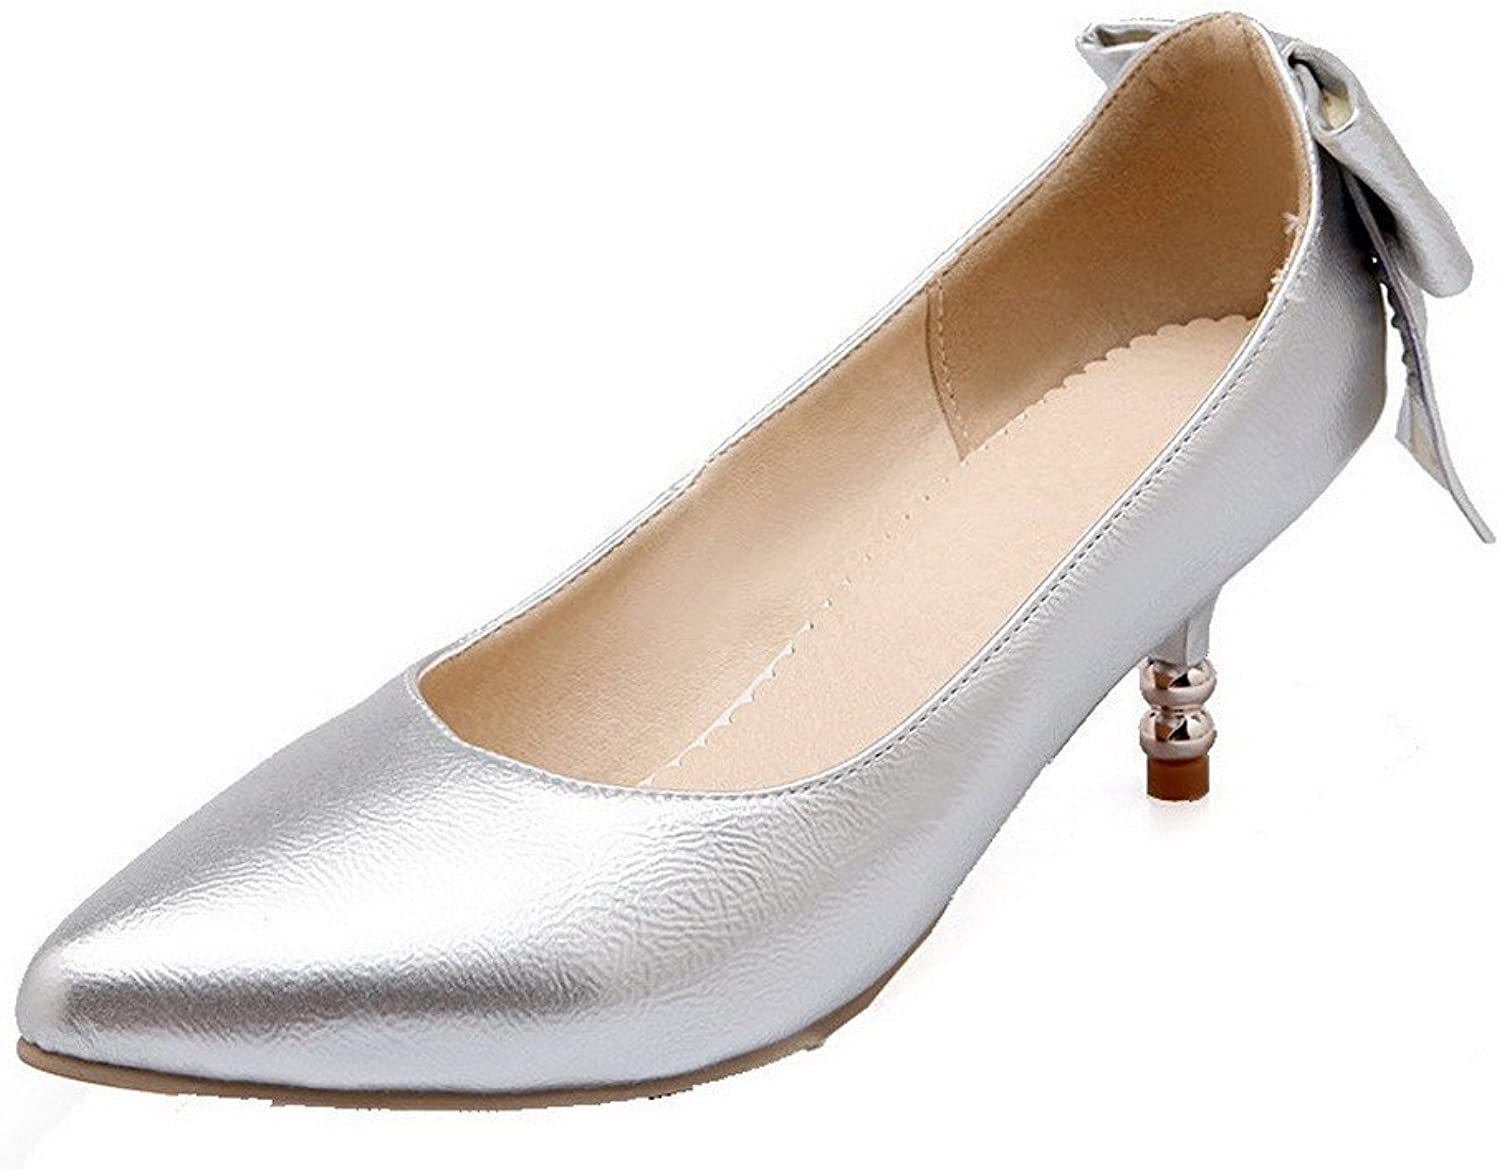 AllhqFashion Women's Pull-on PU Pointed Closed Toe Kitten-Heels Solid Pumps-shoes